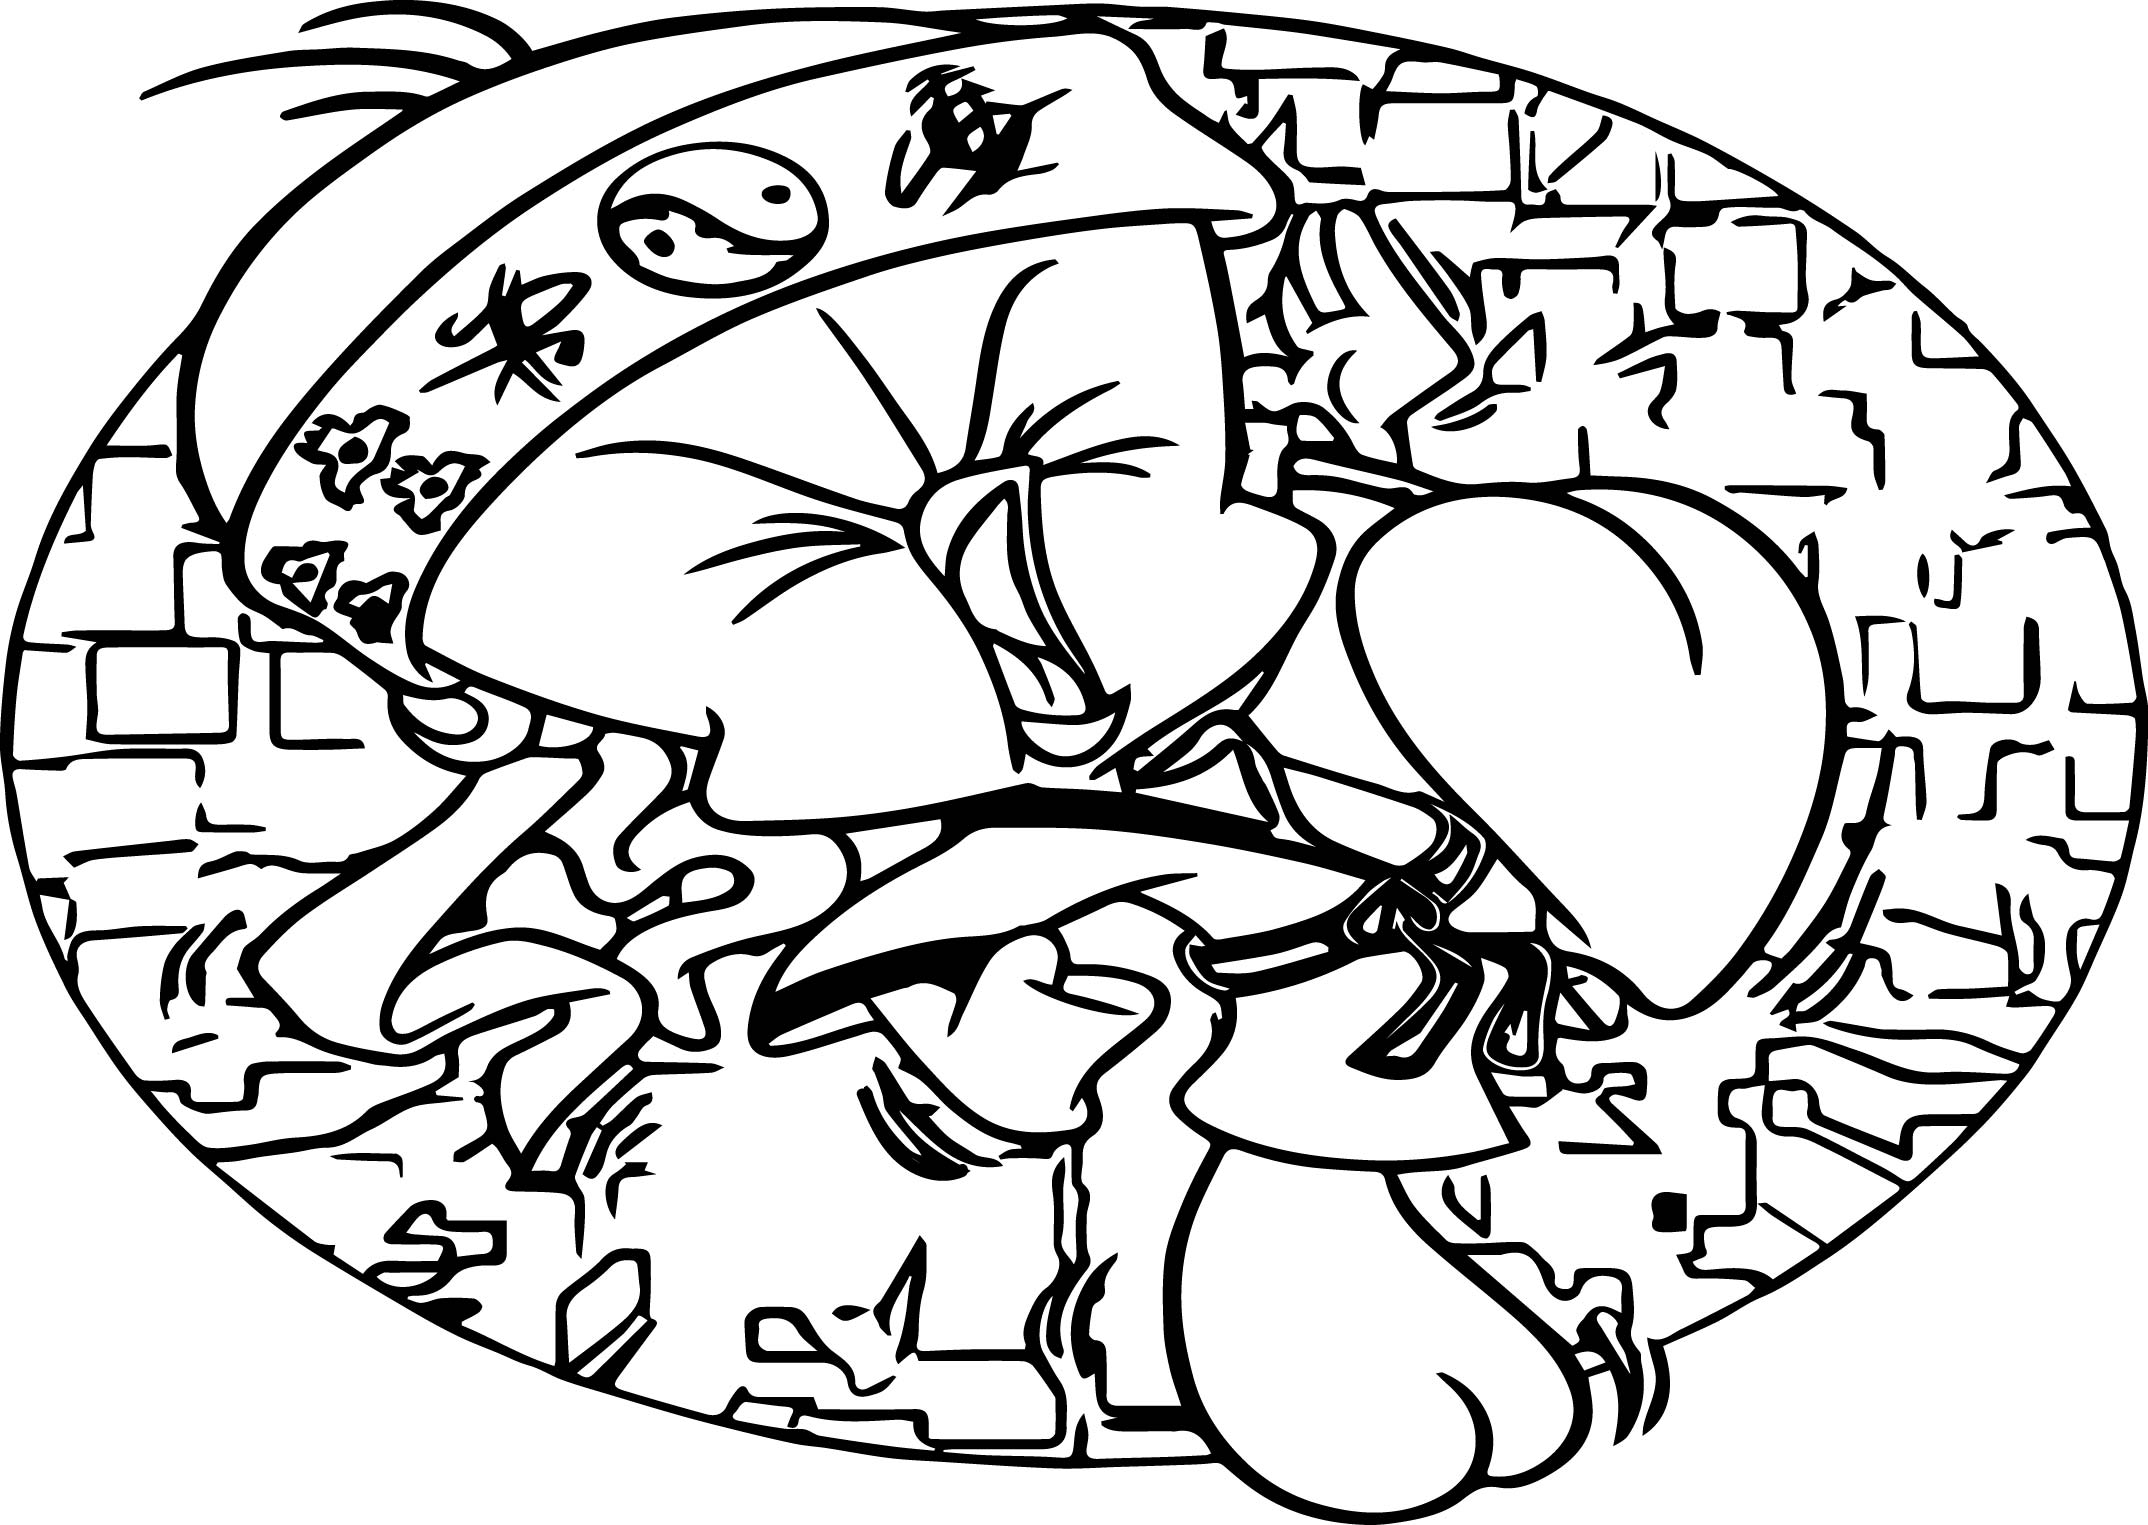 Karate Tweety Coloring Page